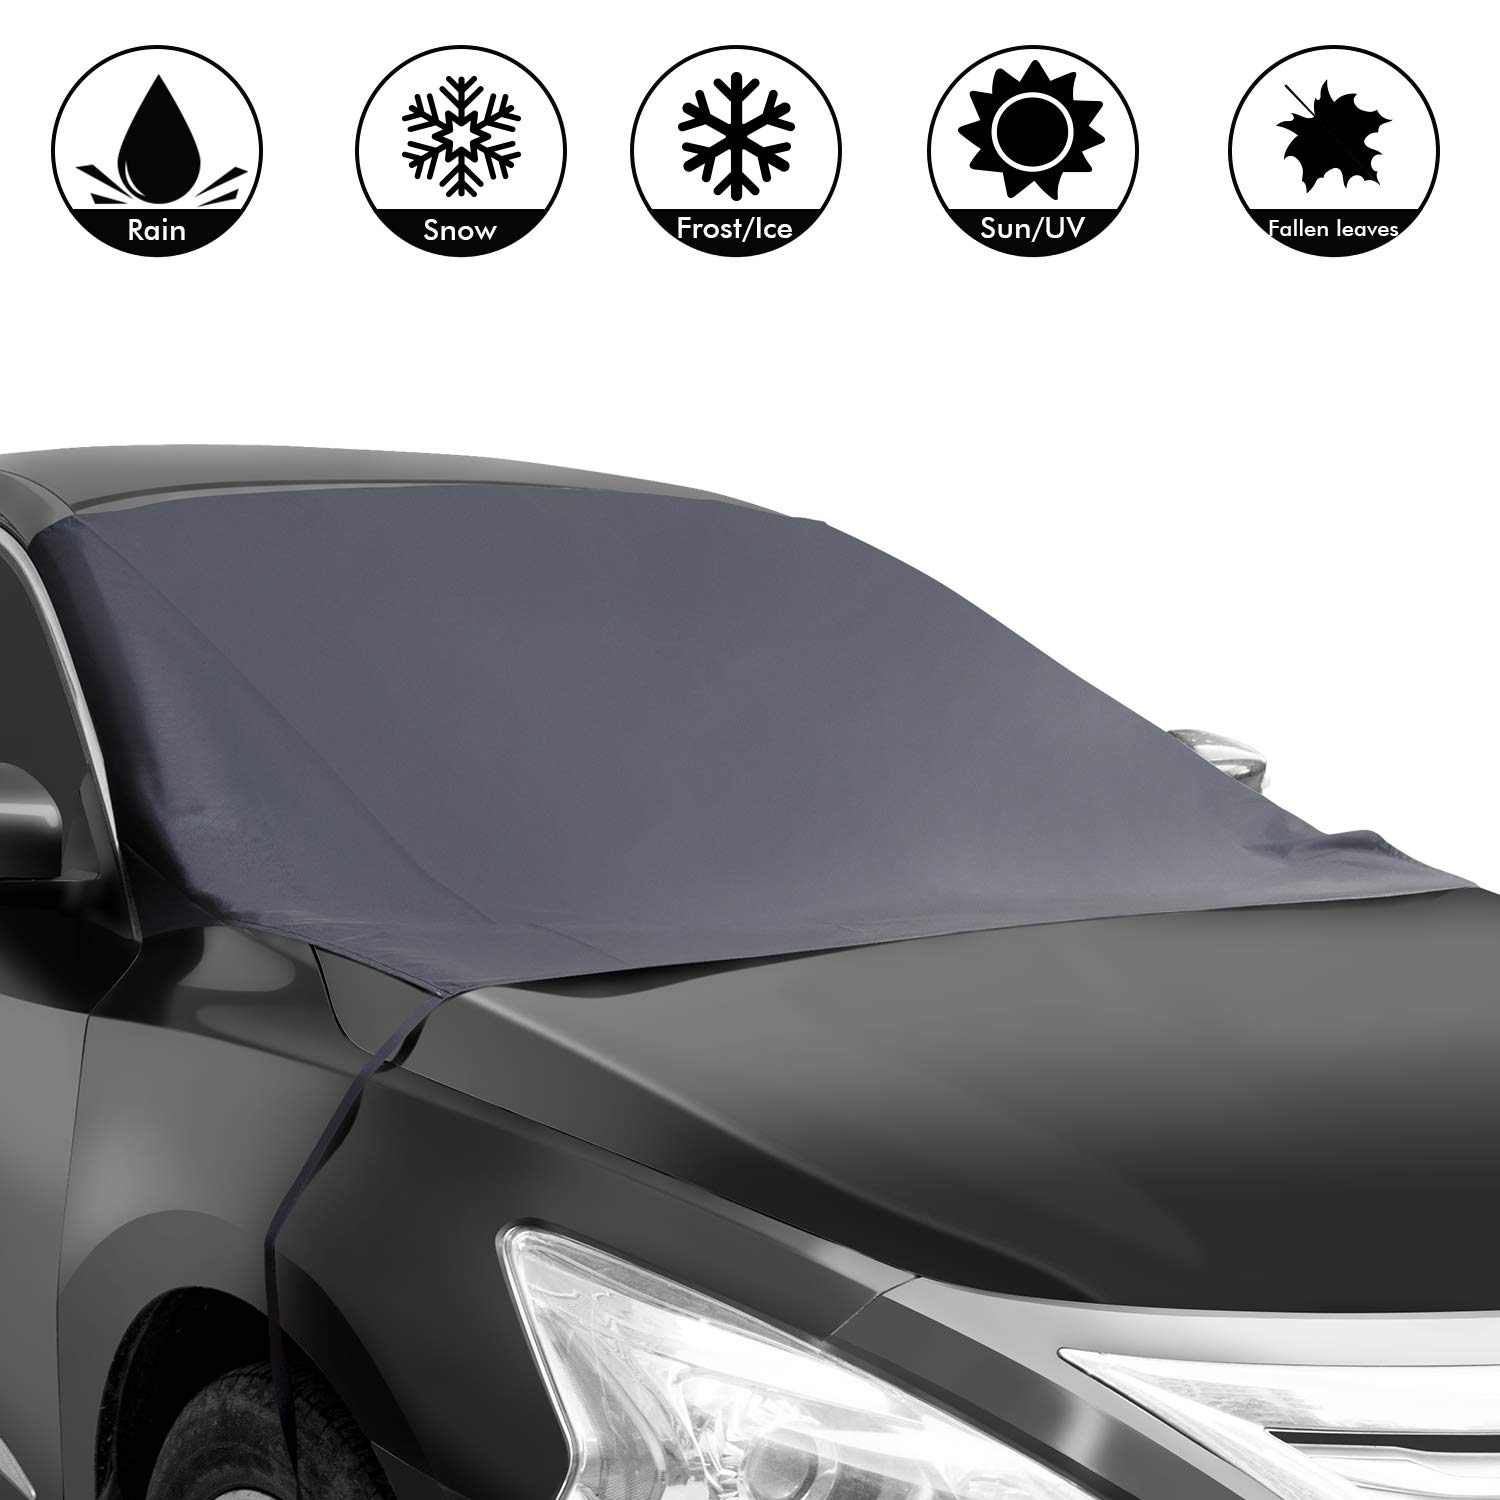 Shynerk Magnetic Edges Car Snow Cover, Frost Car Windshield Snow Cover, Frost Guard Protector, Ice Cover, Car Windsheild Sun Shade, Waterproof Windshield Protector Car/Truck/SUV 82''x48.8''